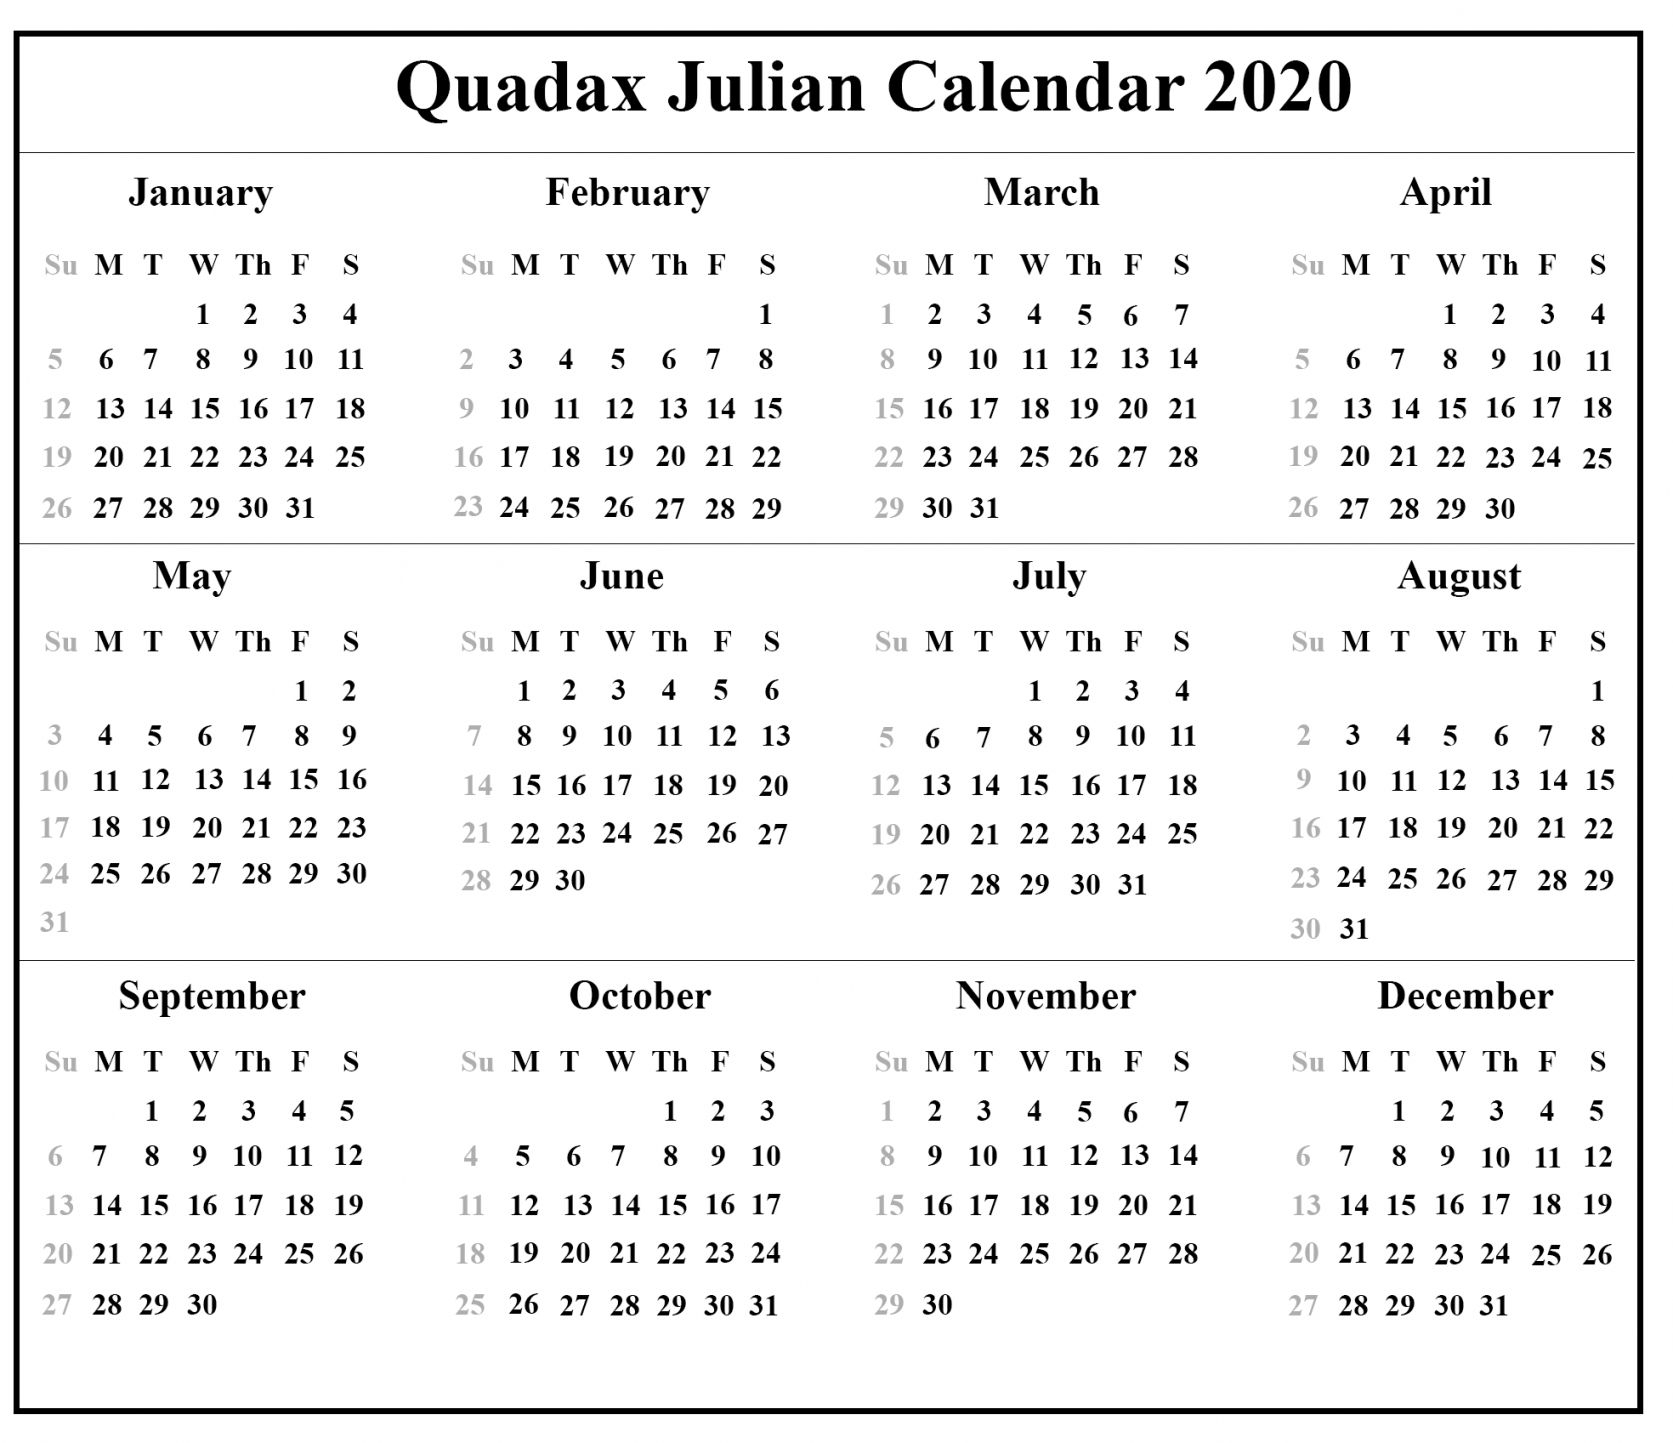 Julian Date Calendar 2021 | Calendar 2020 Template regarding Julian Date Conversion 2021